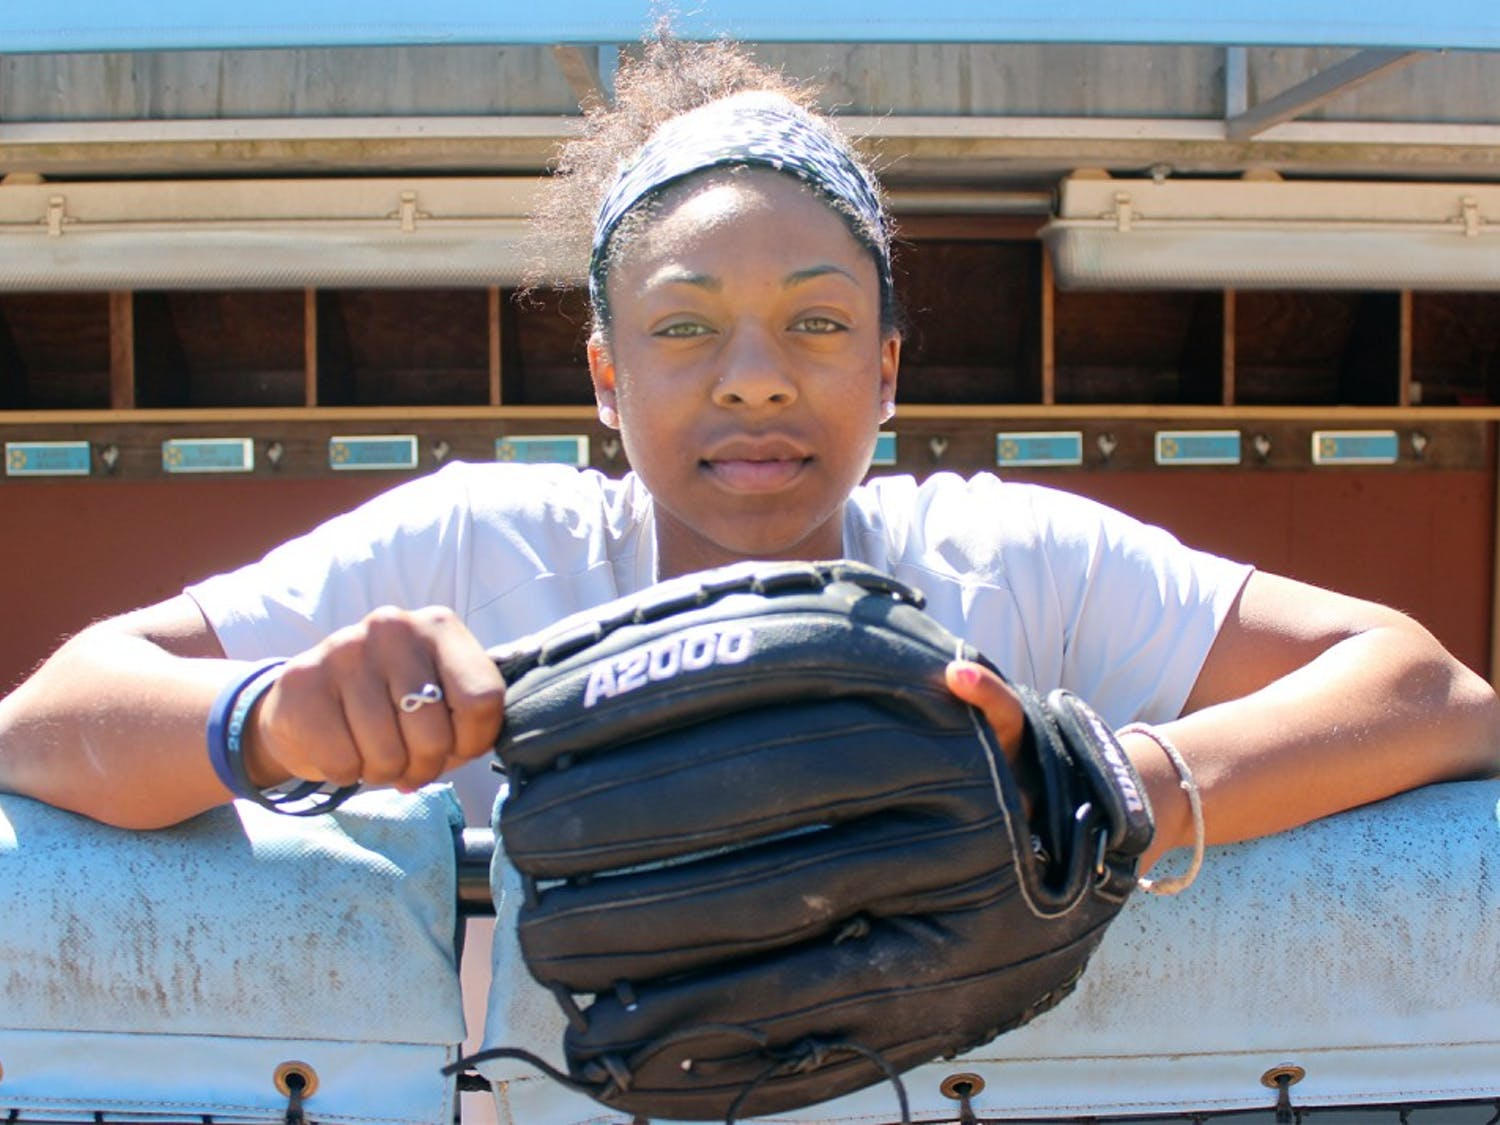 Centerfielder Aquilla Mateen currently leads the North Carolina softball team in both hits and stolen bases. Her athleticism helped her on the way to All-ACC honors during her sophomore campaign.